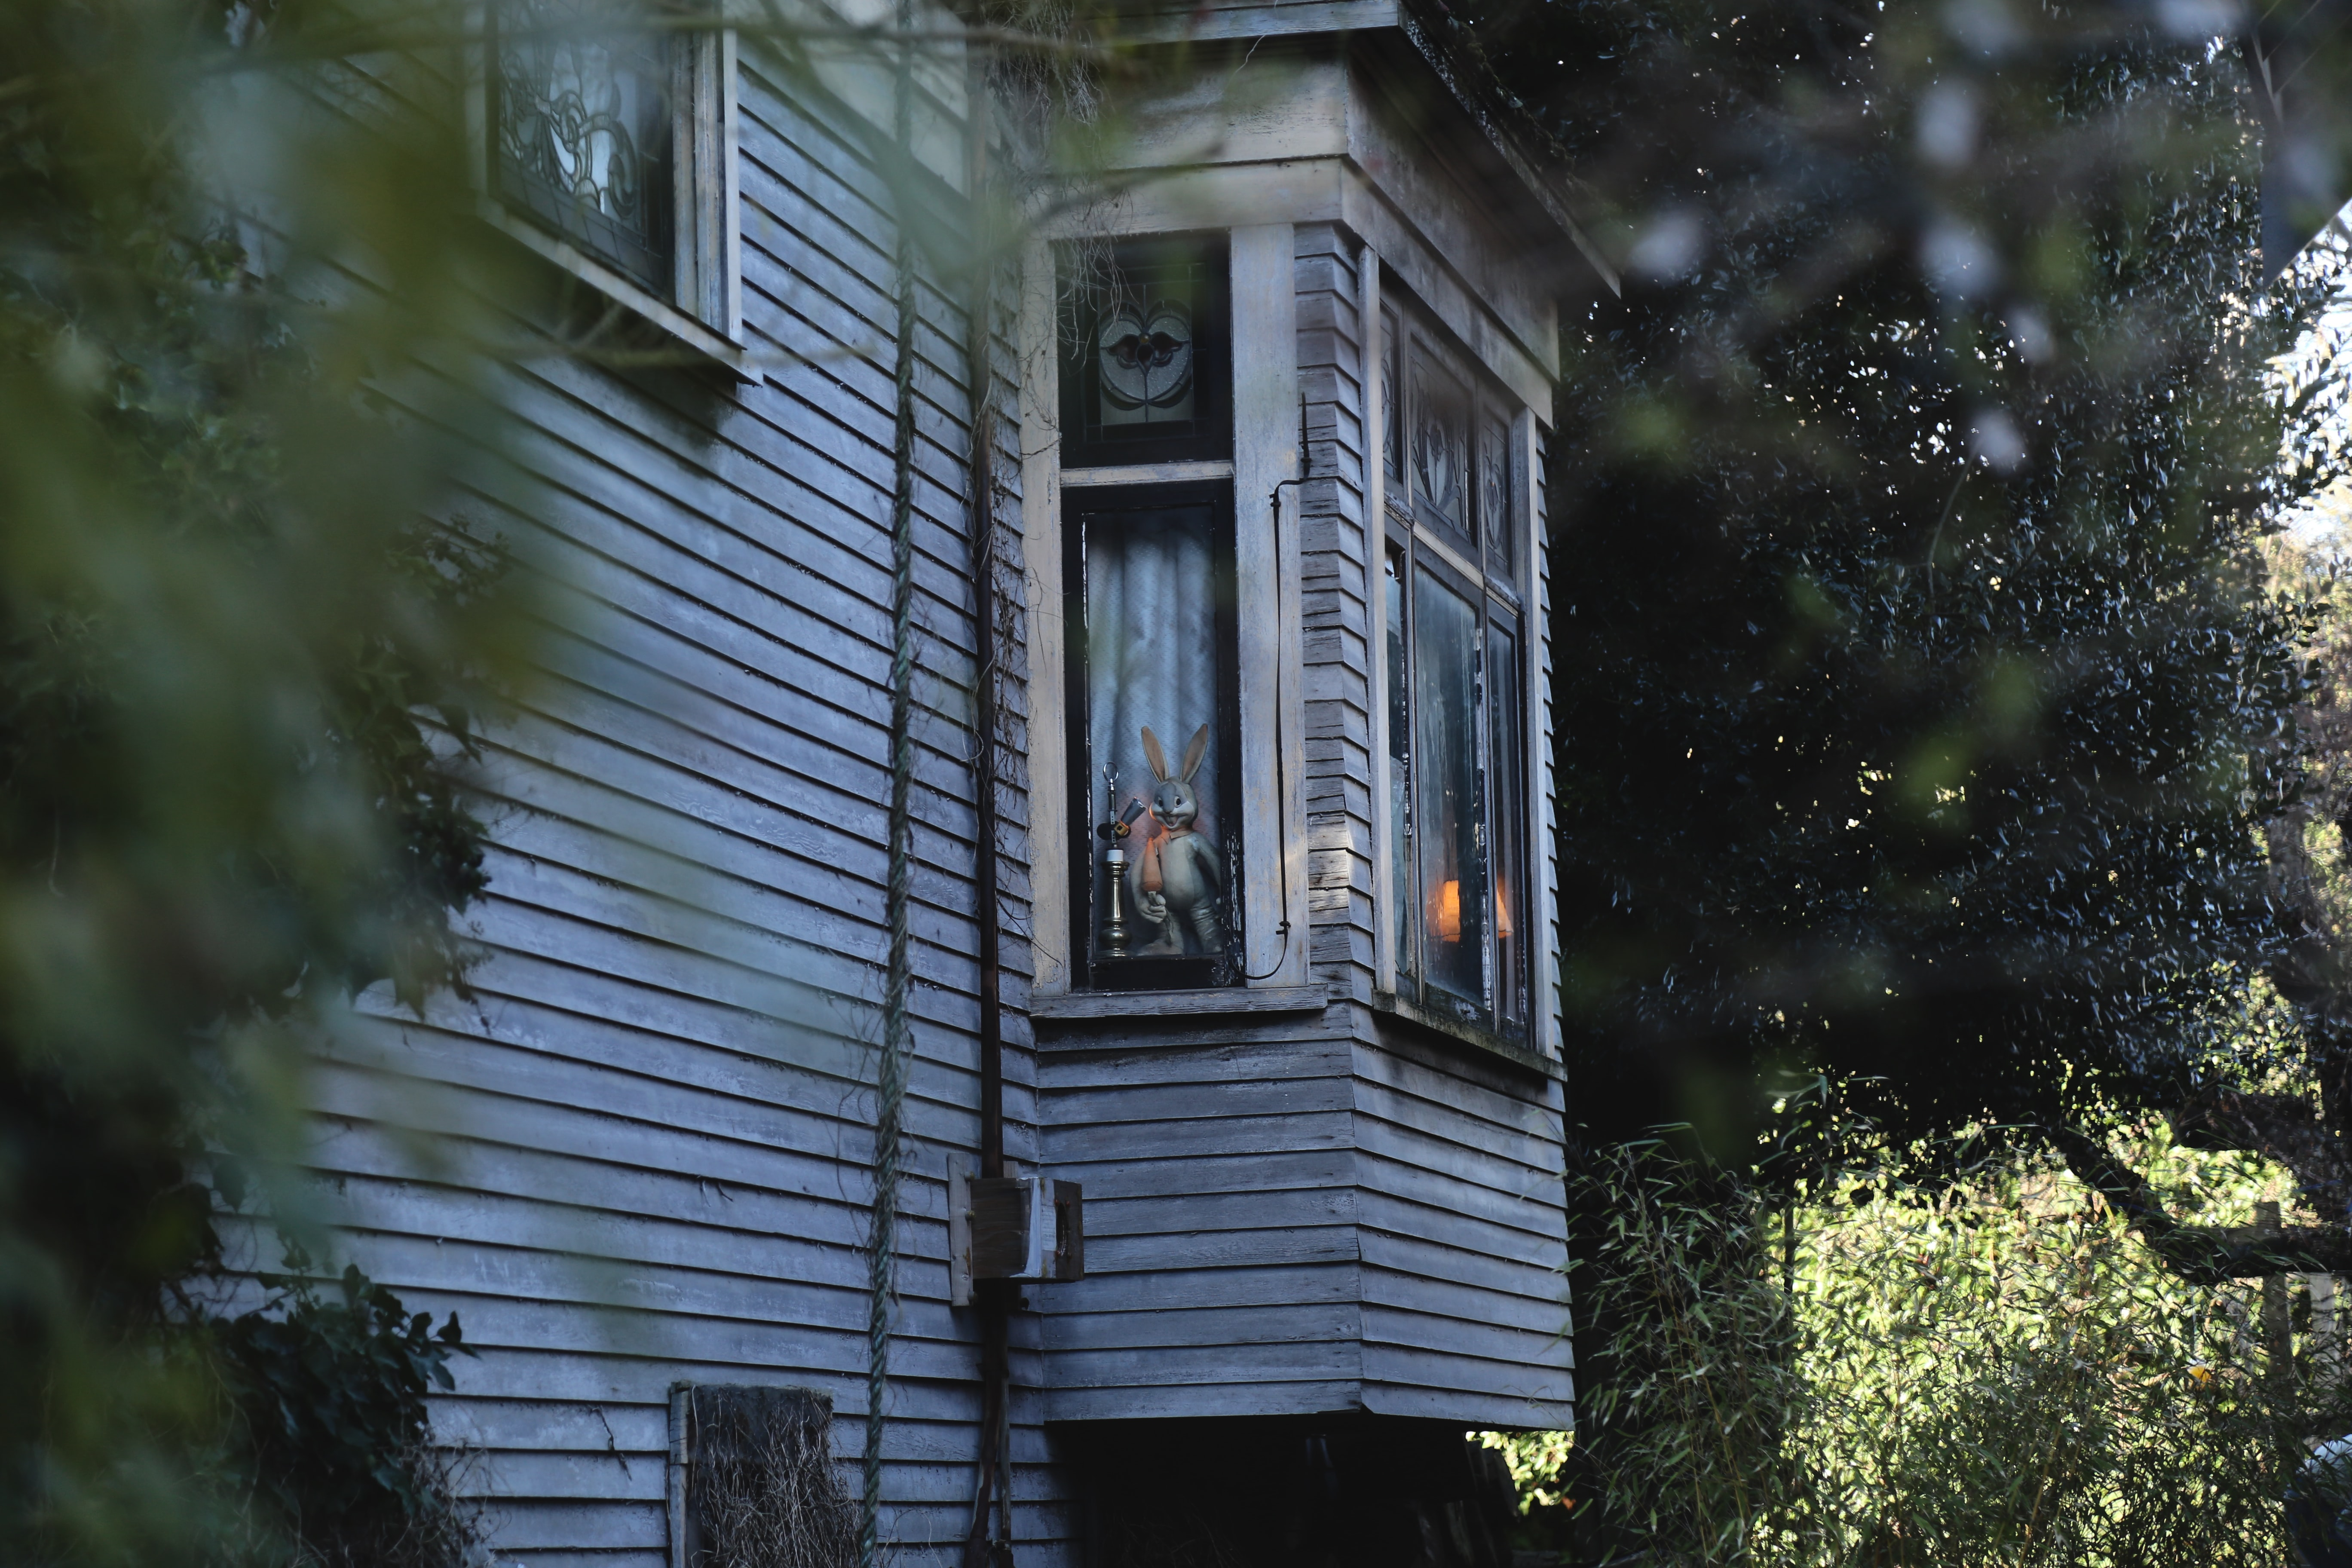 The House at the Corner haunted stories